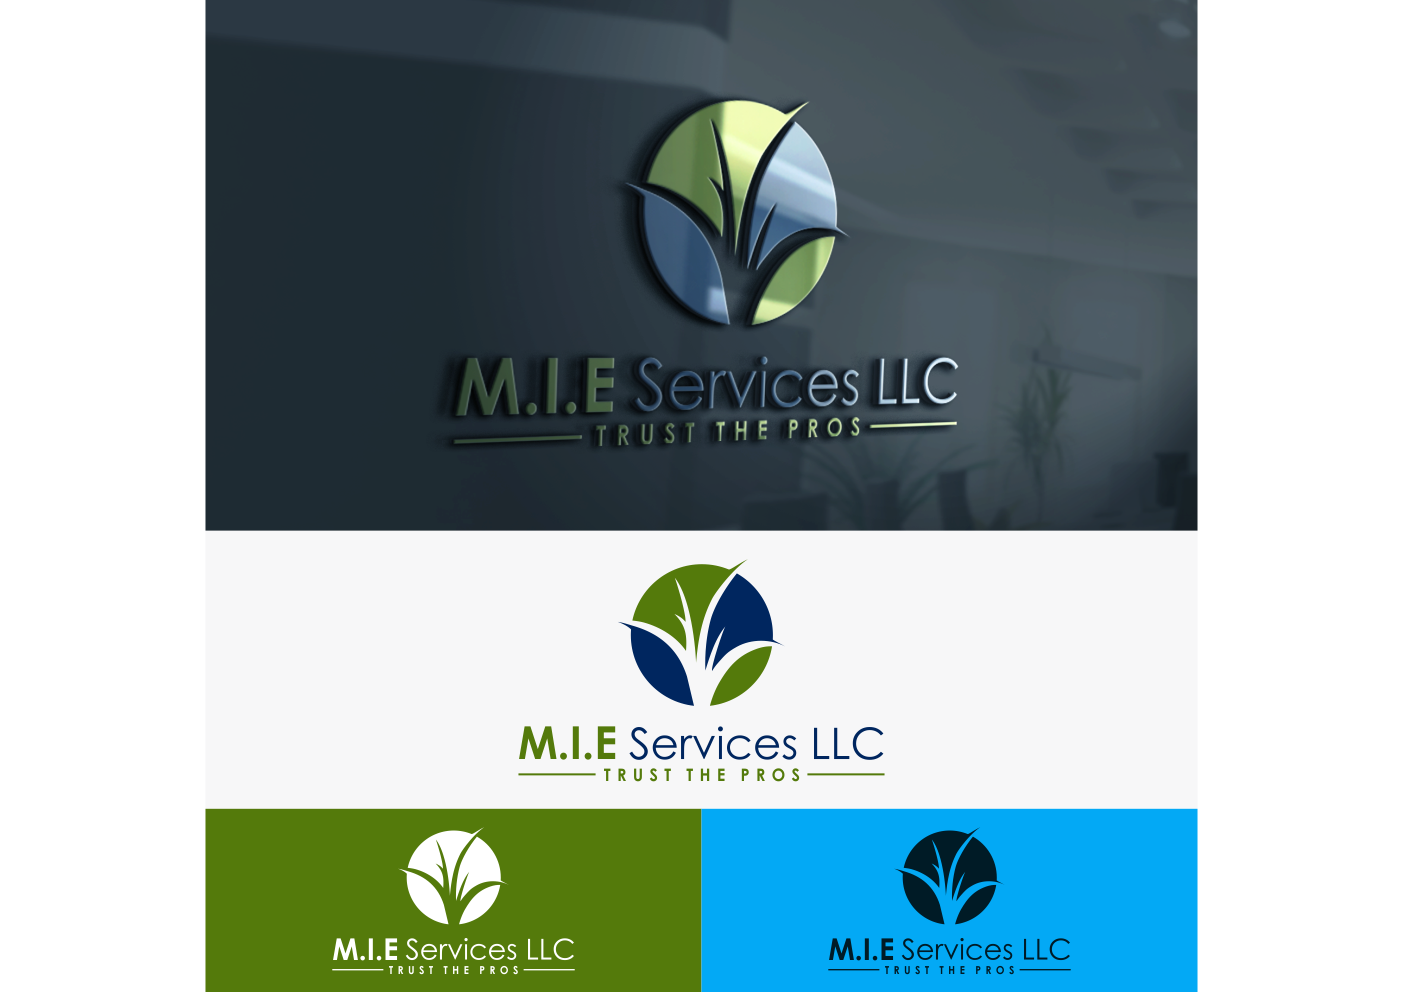 Winning Entry #9 for Logo Design contest - Landscaping Logo Design required by M.I.E Services LLC - original